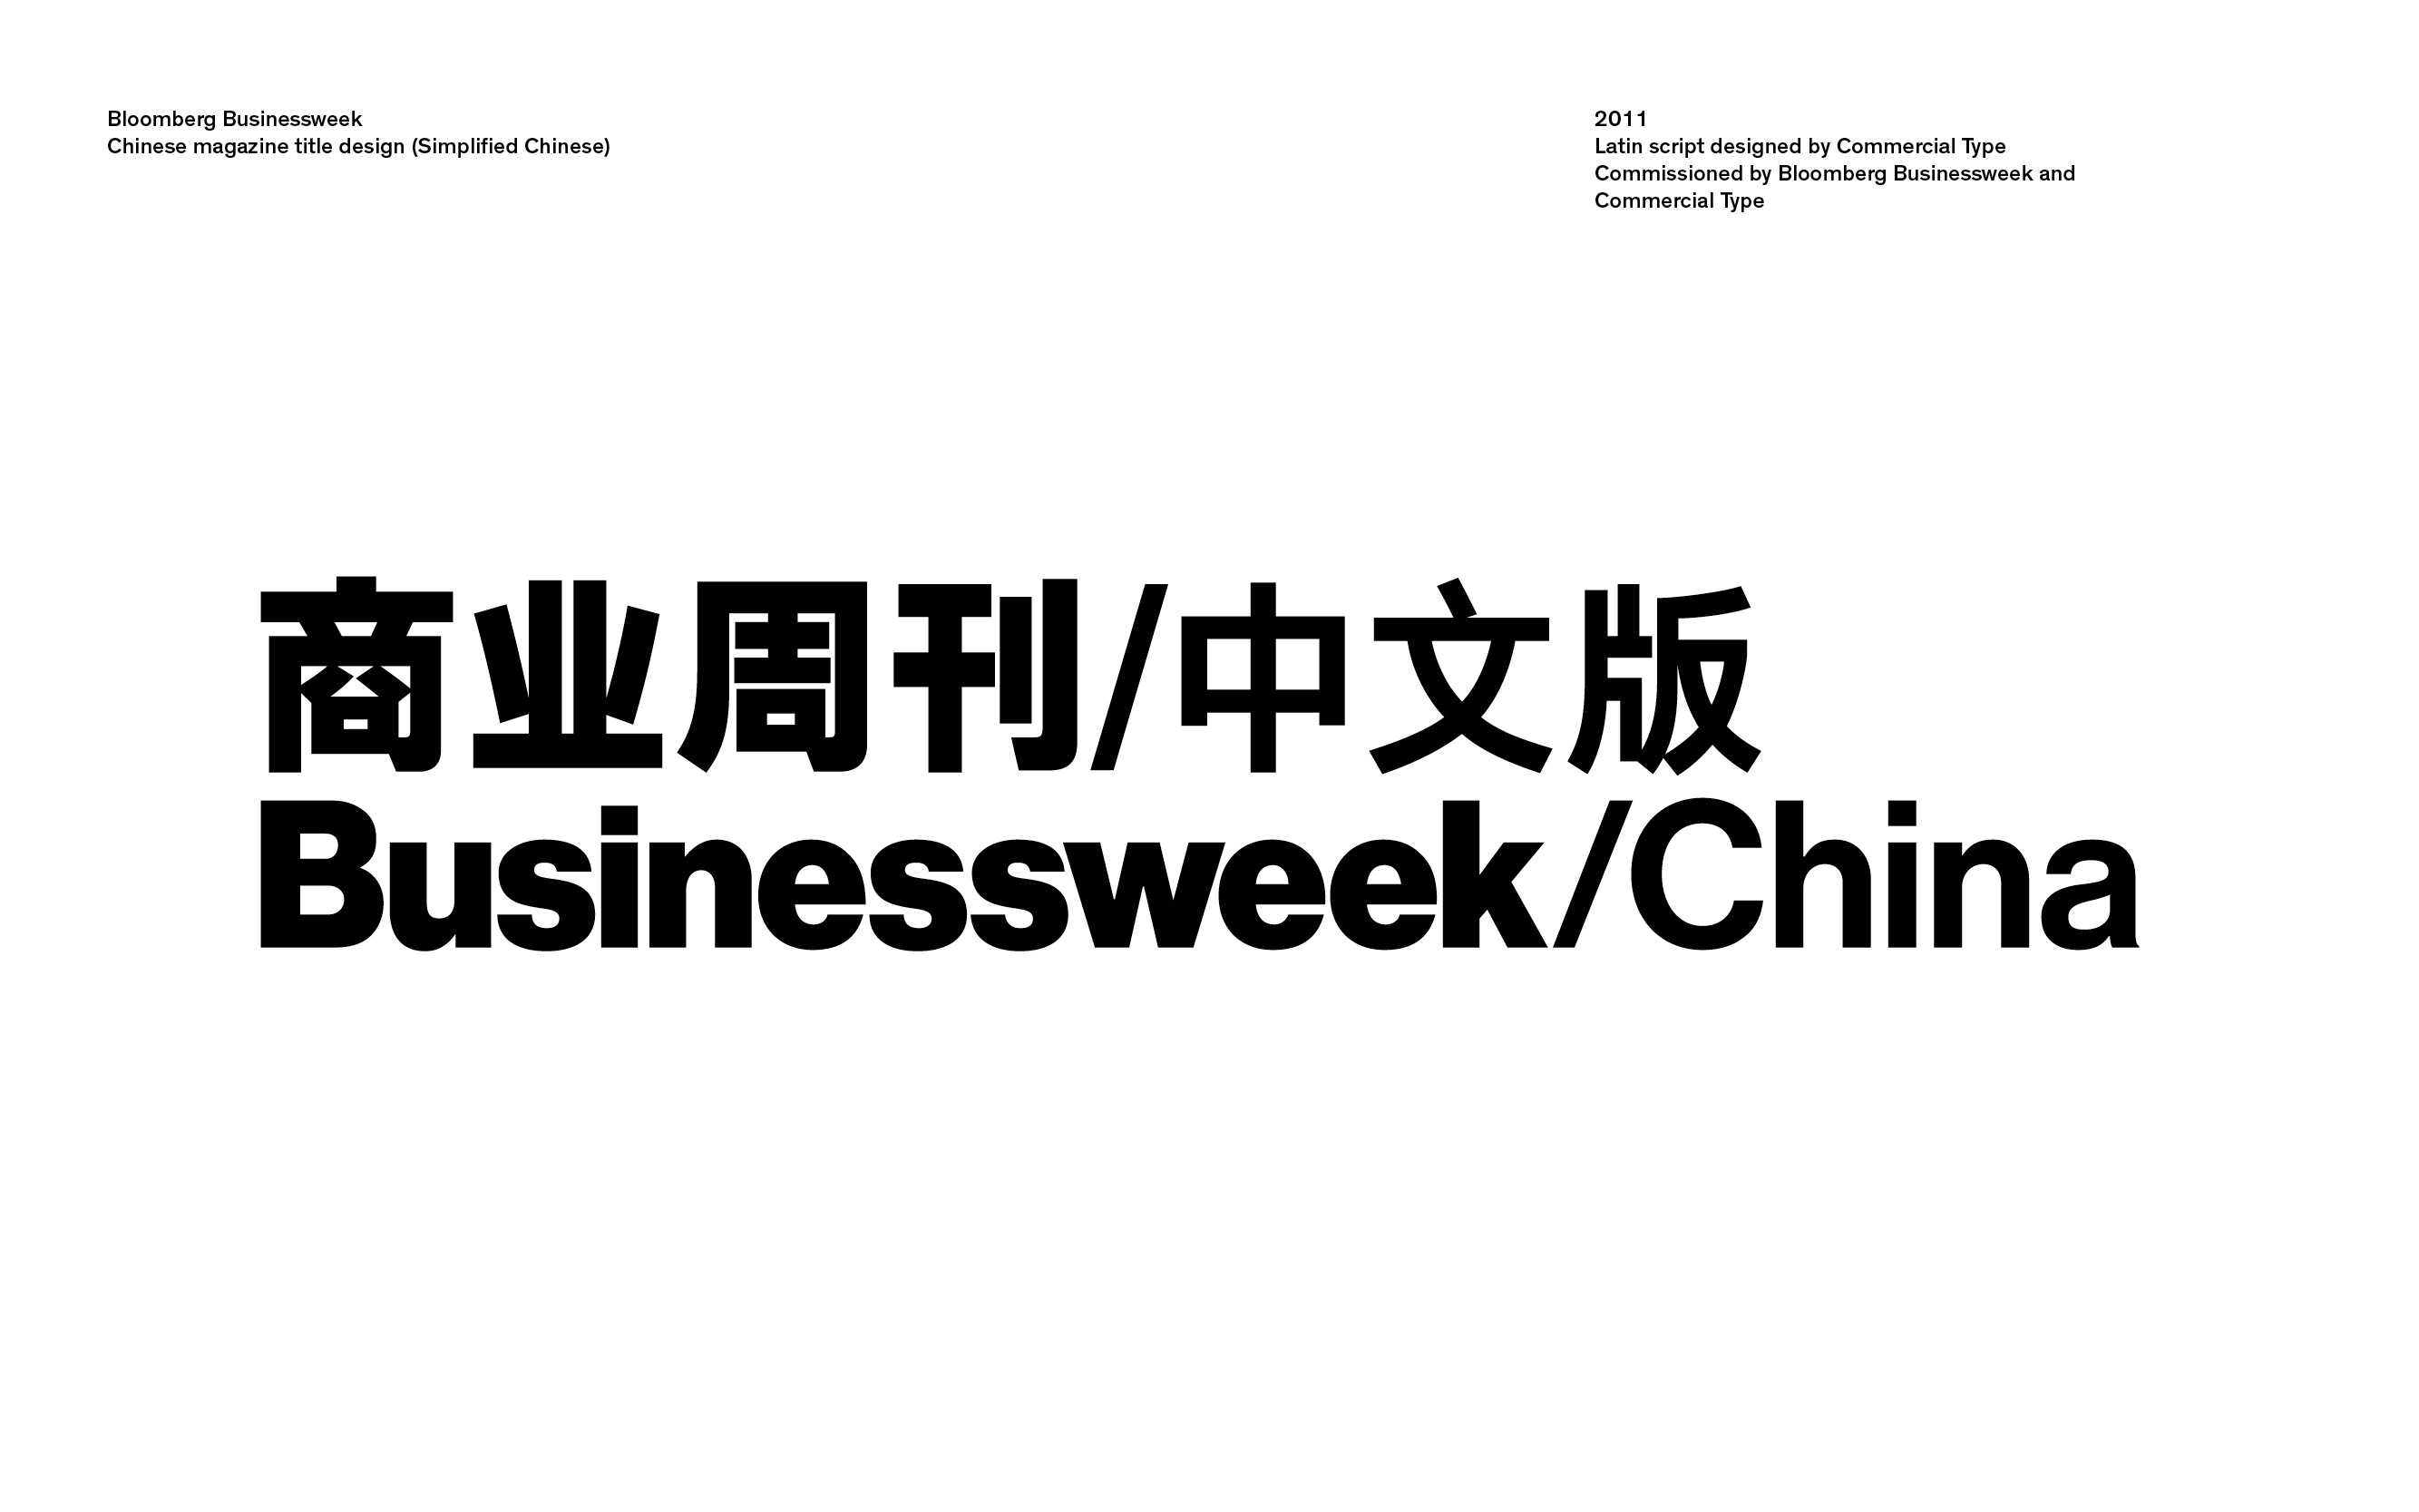 BusinessweekChina